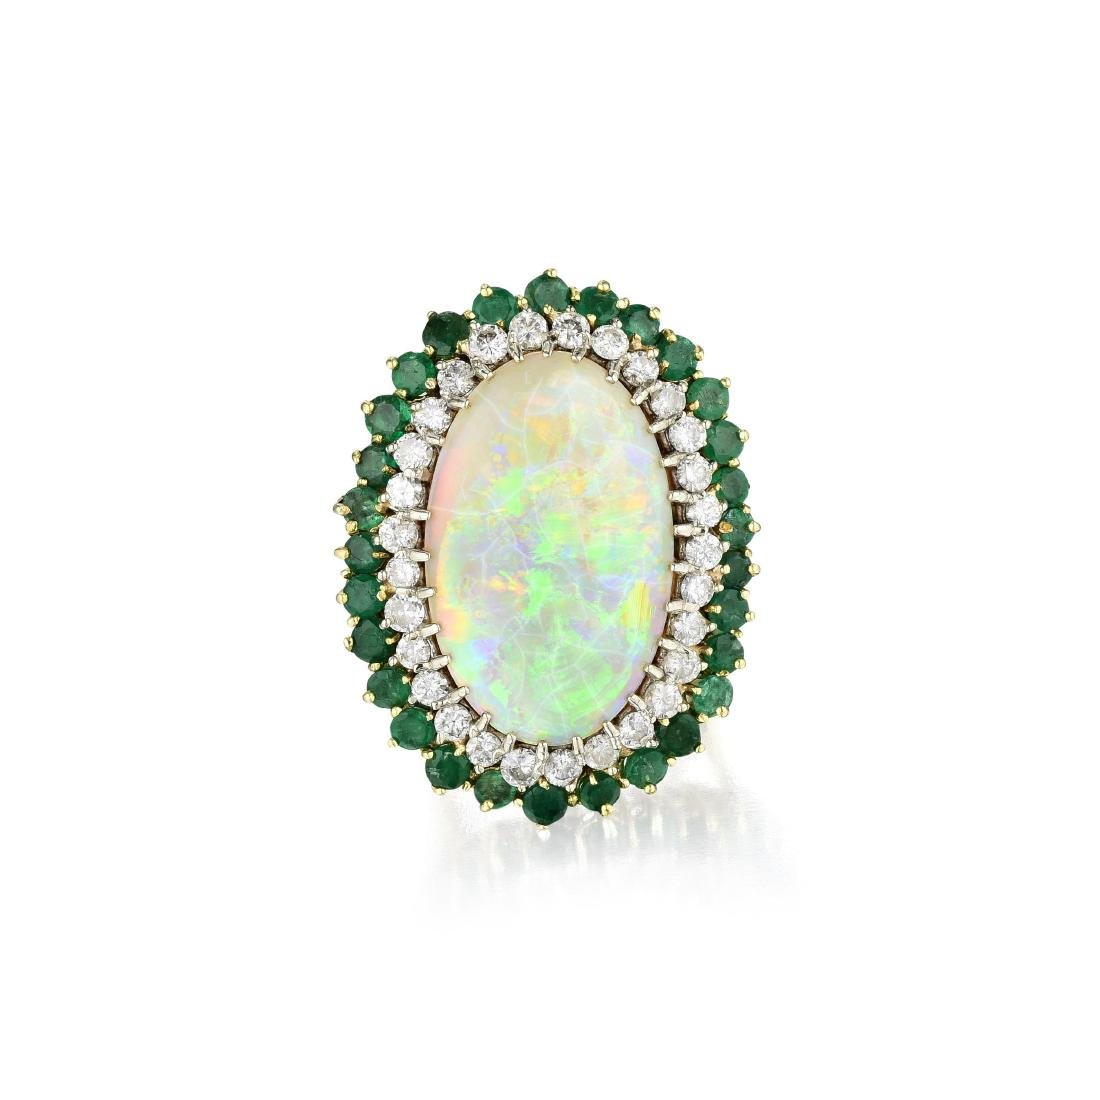 An 18K Gold, Opal, Emerald and Diamond Ring